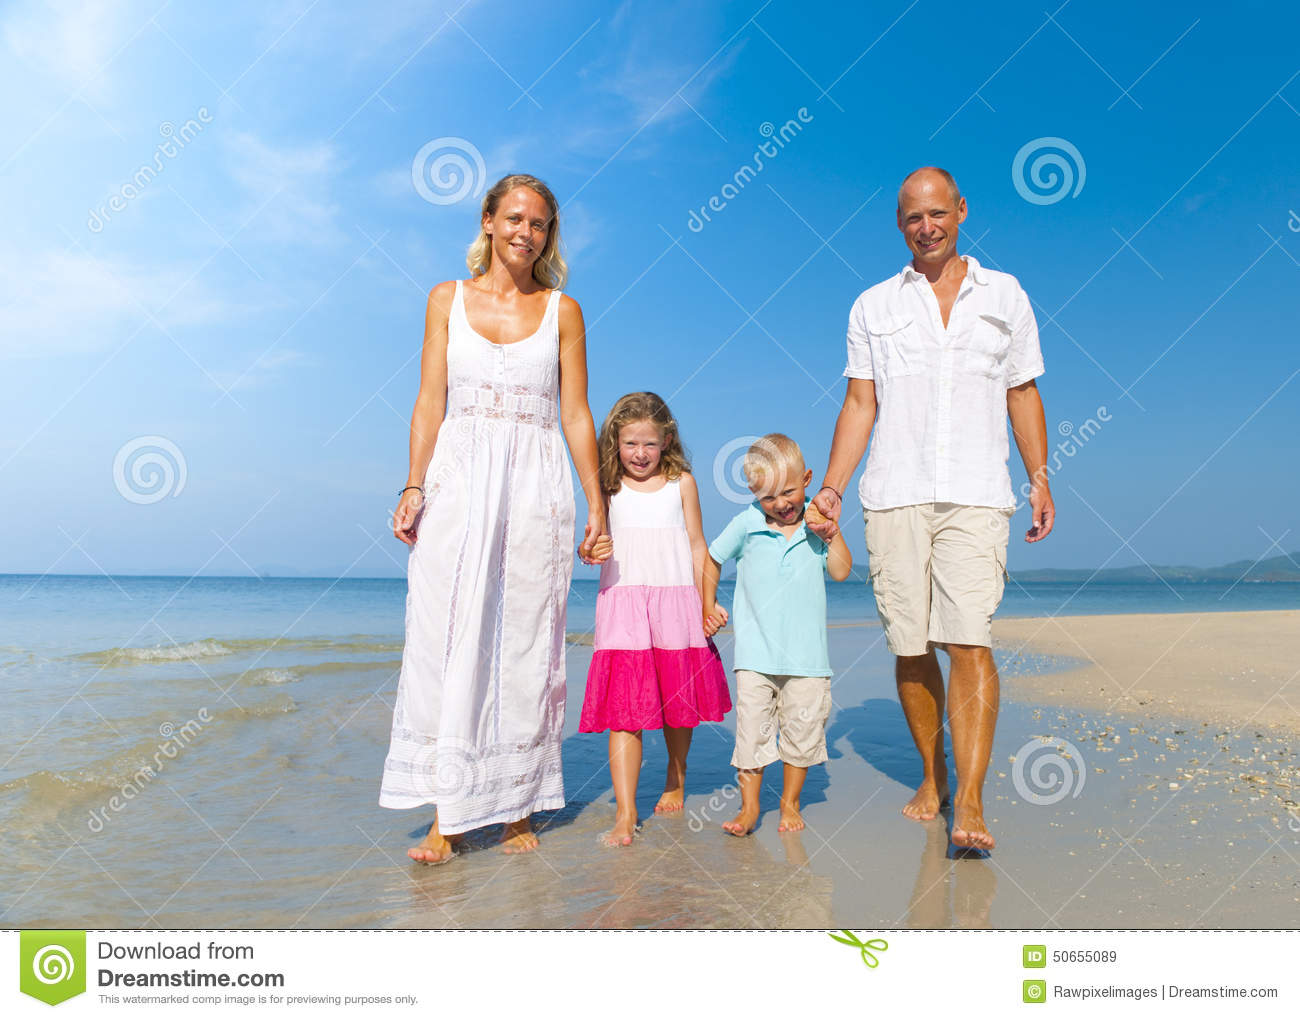 Family Walking Beach Holiday Vacations Concept